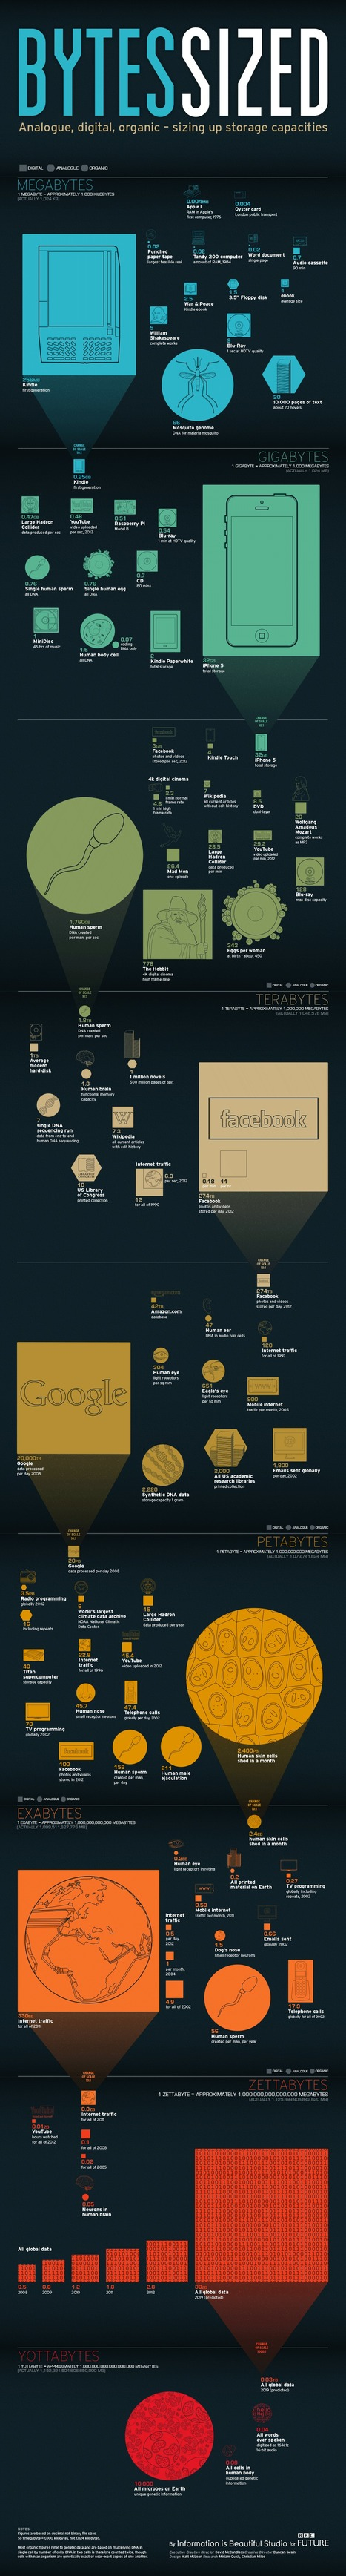 Bytes Sized: Information Storage, Visualized [infographic] | pdxtech-info | Scoop.it